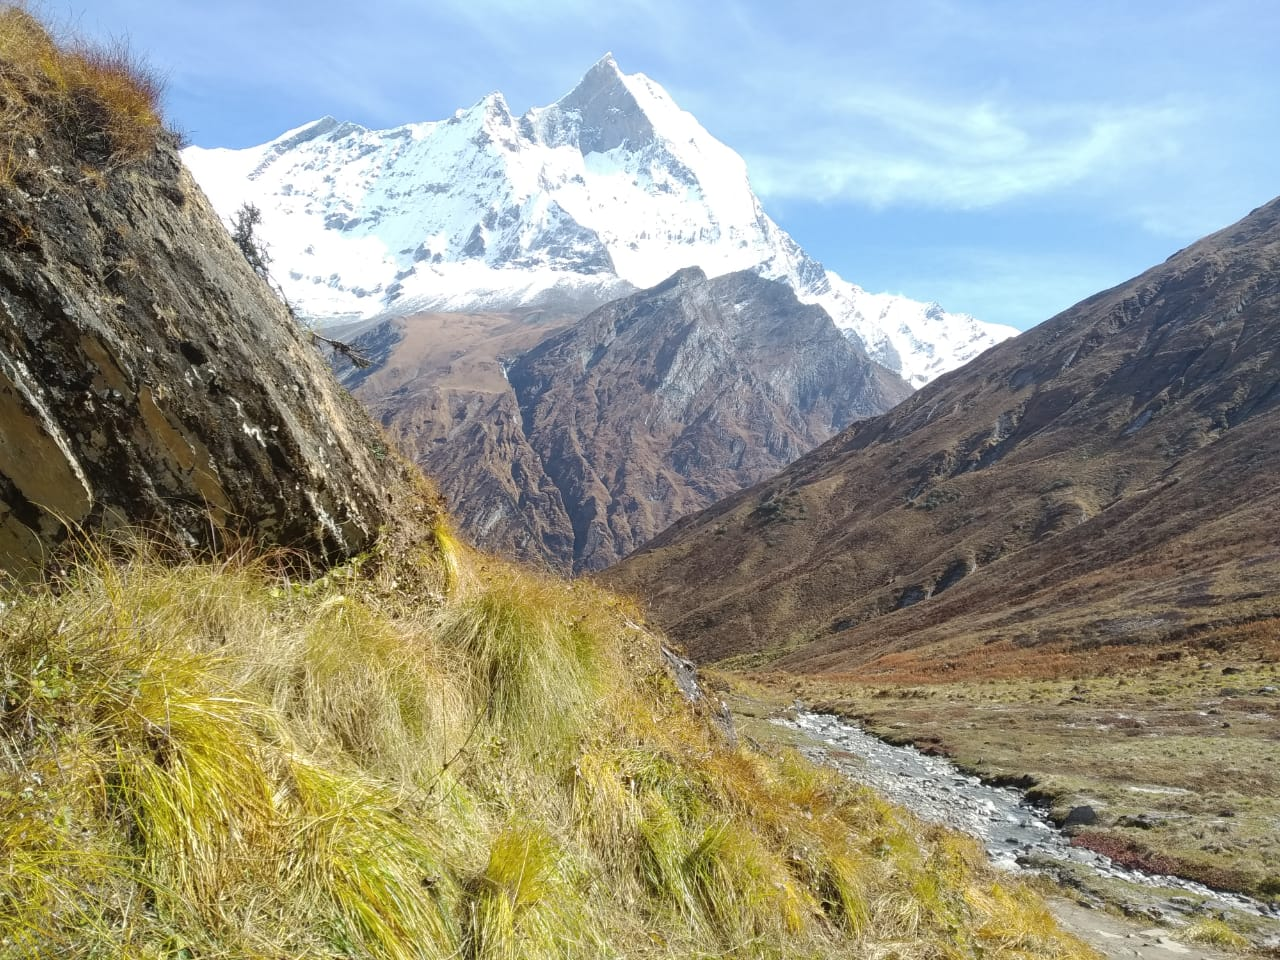 10 day Langtang Valley trekking holiday in Nepal